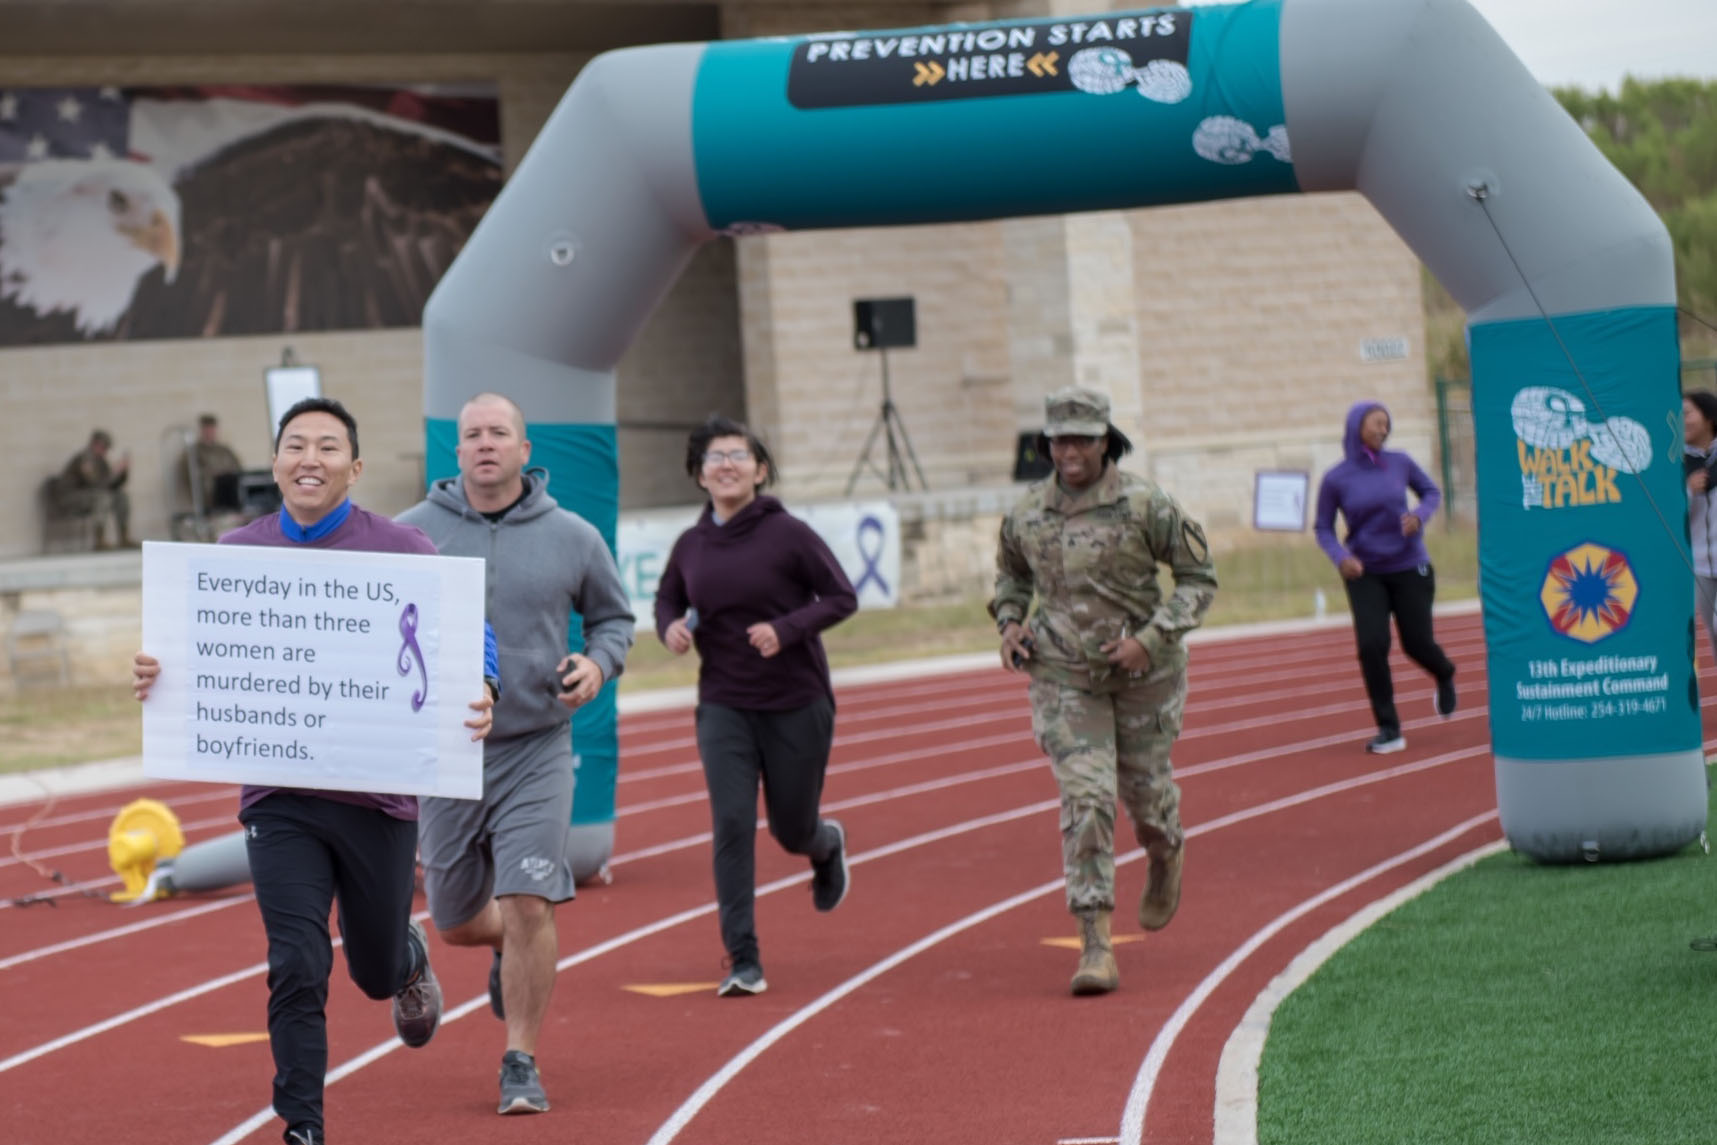 Caption: Runners participate in an Oct. 17 domestic violence awareness event at Ft. Hood, Tex., Credit:  Kelvin Ringold / U.S. Army